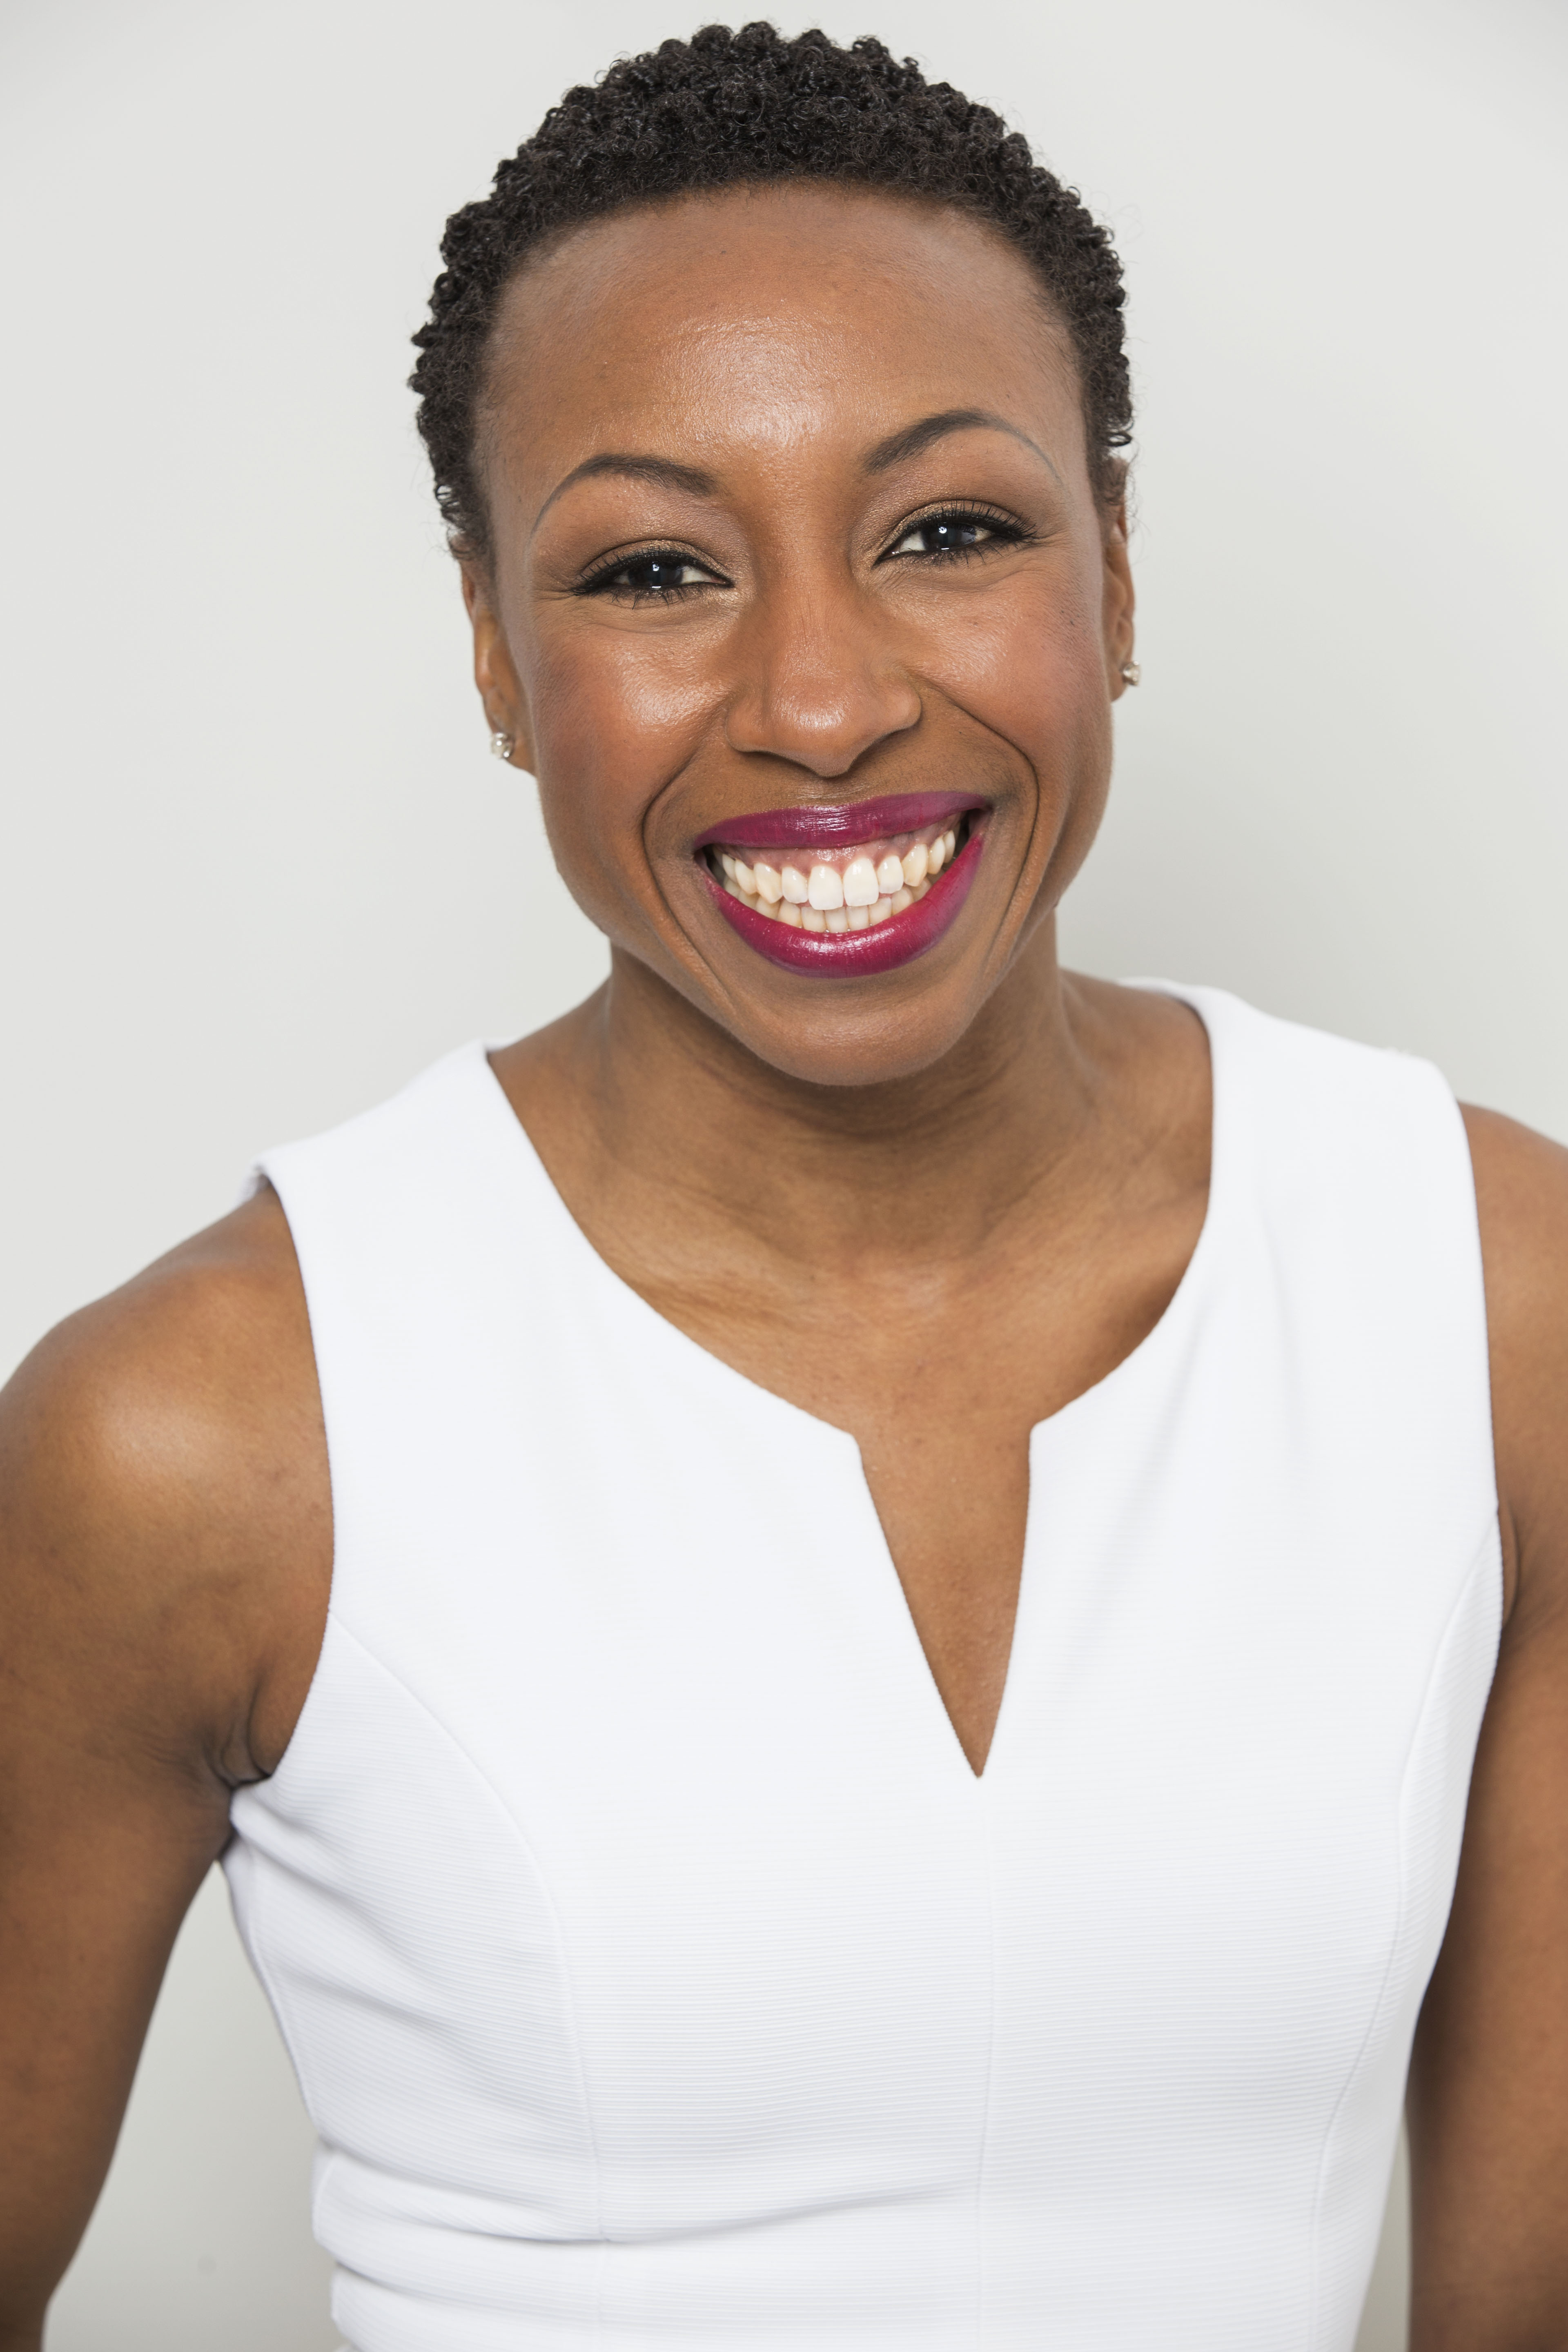 Tiffany Dufu on what being a